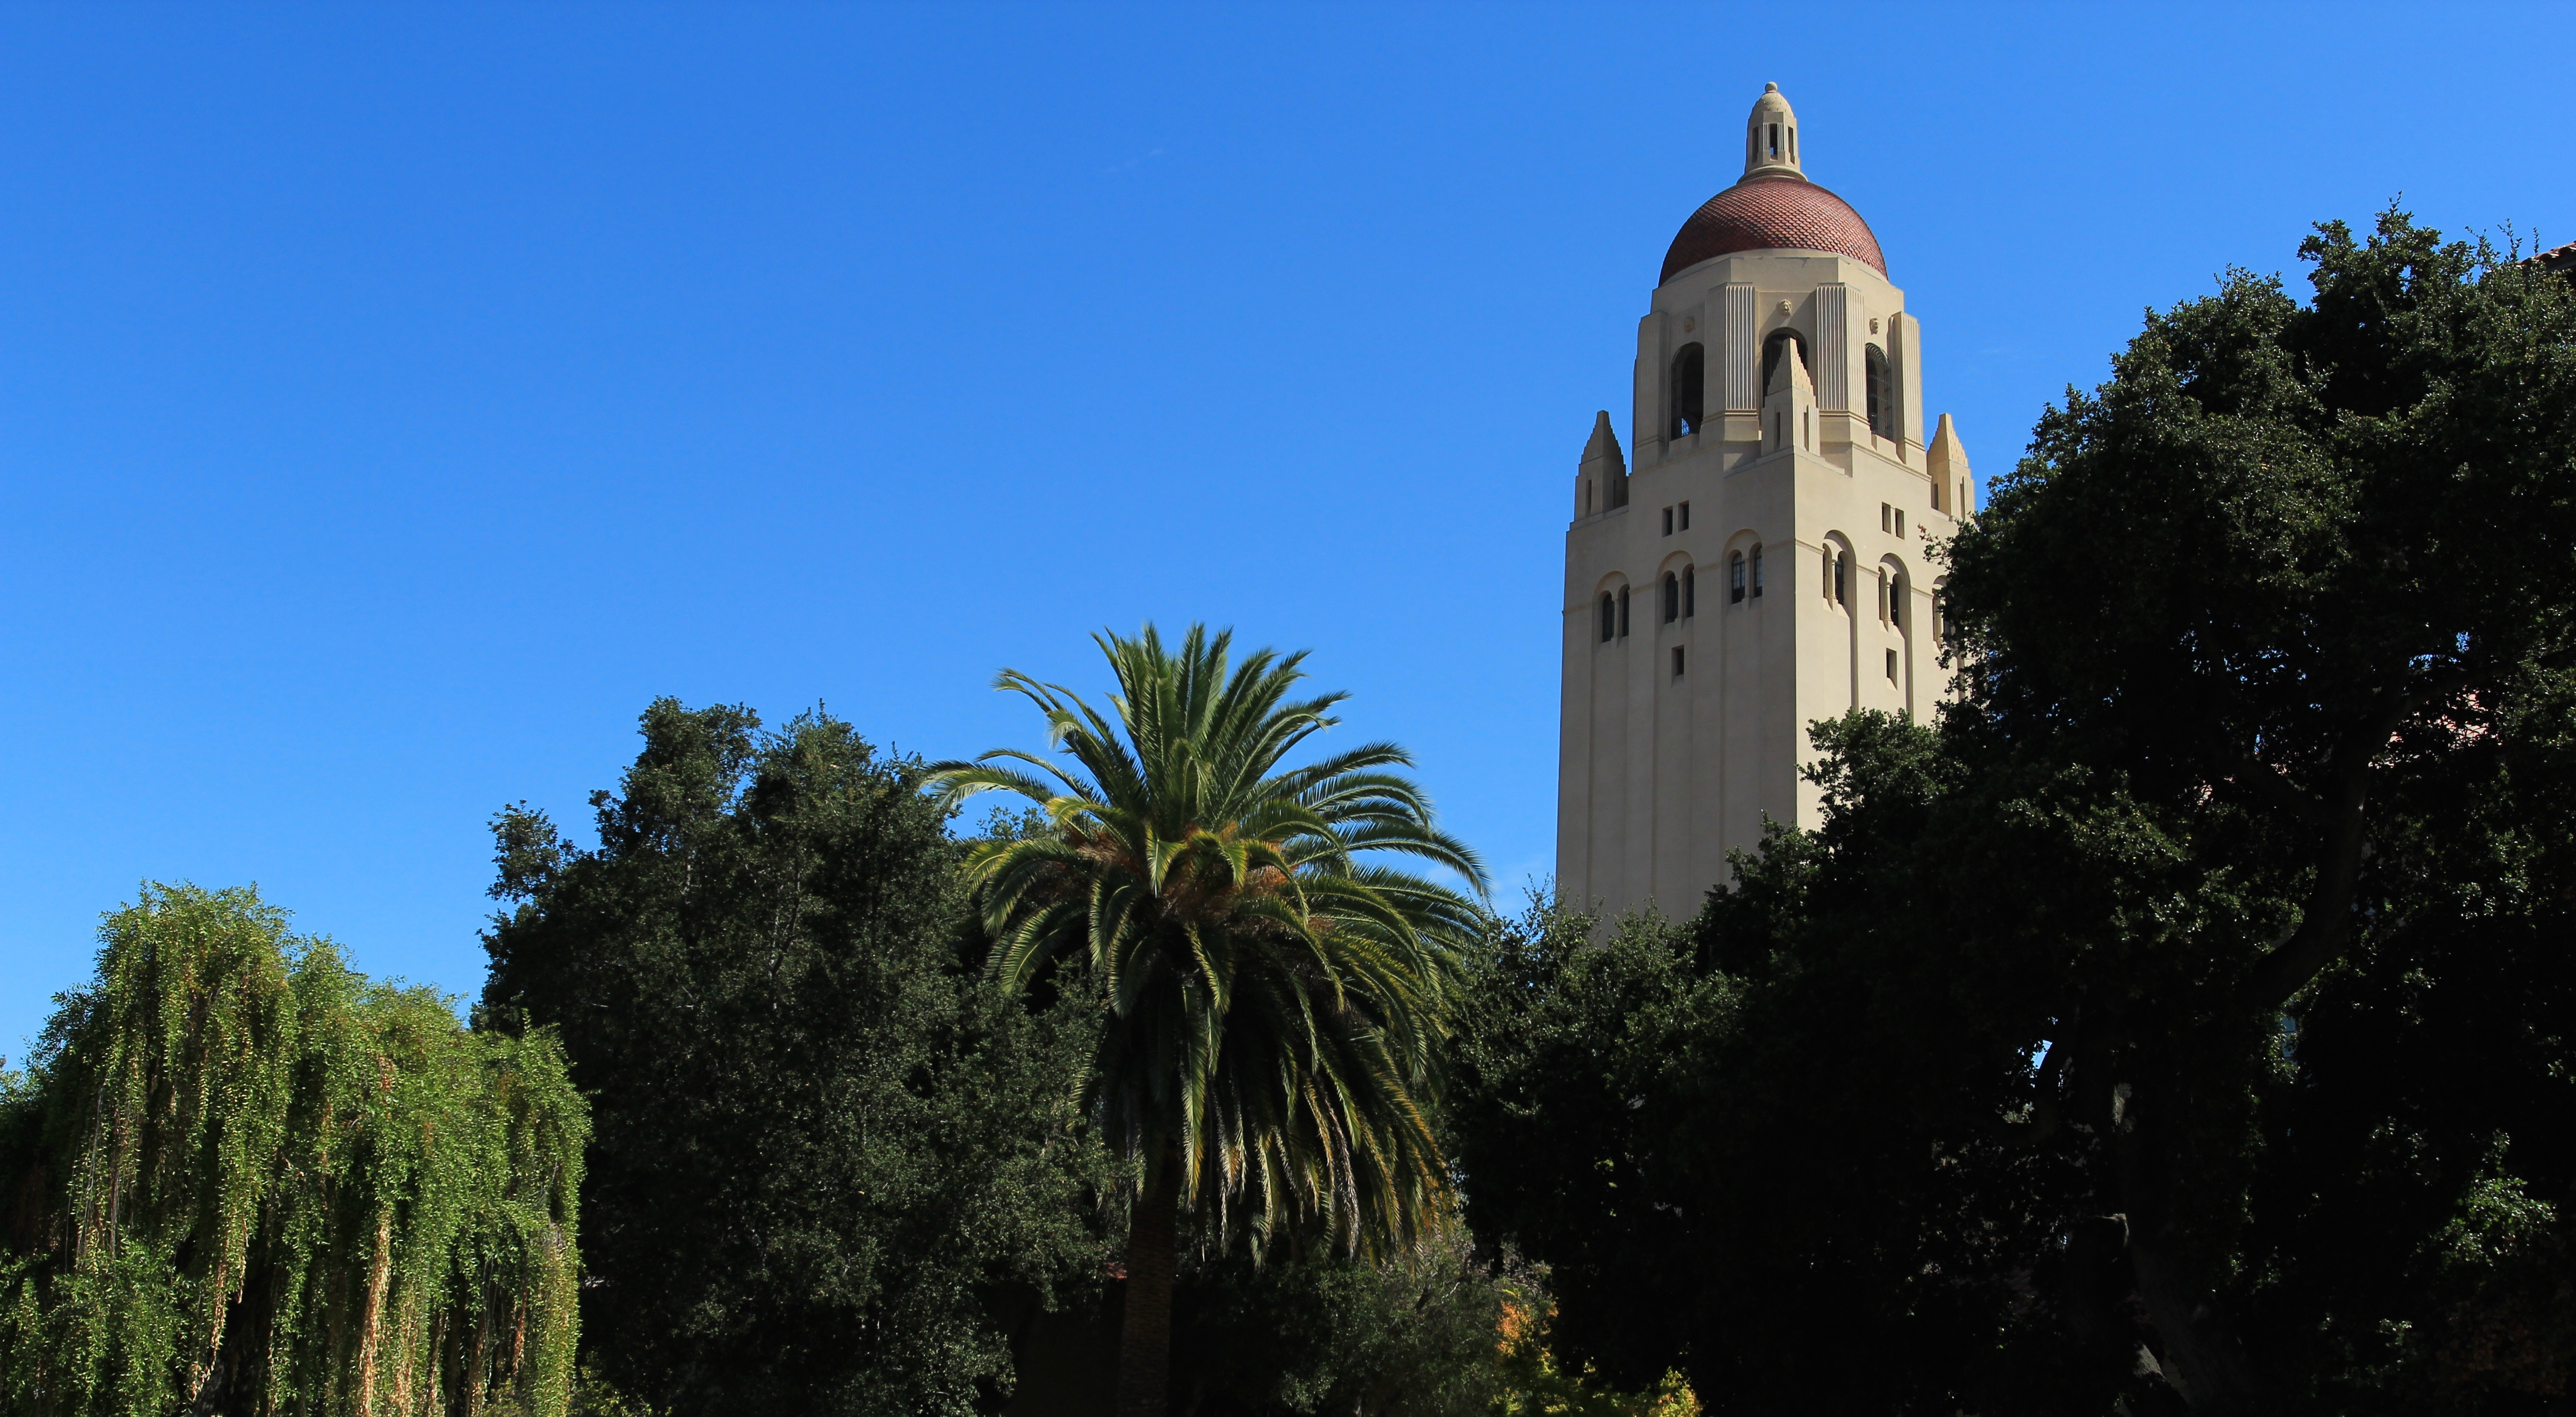 Hoover Tower - a torre de Stanford